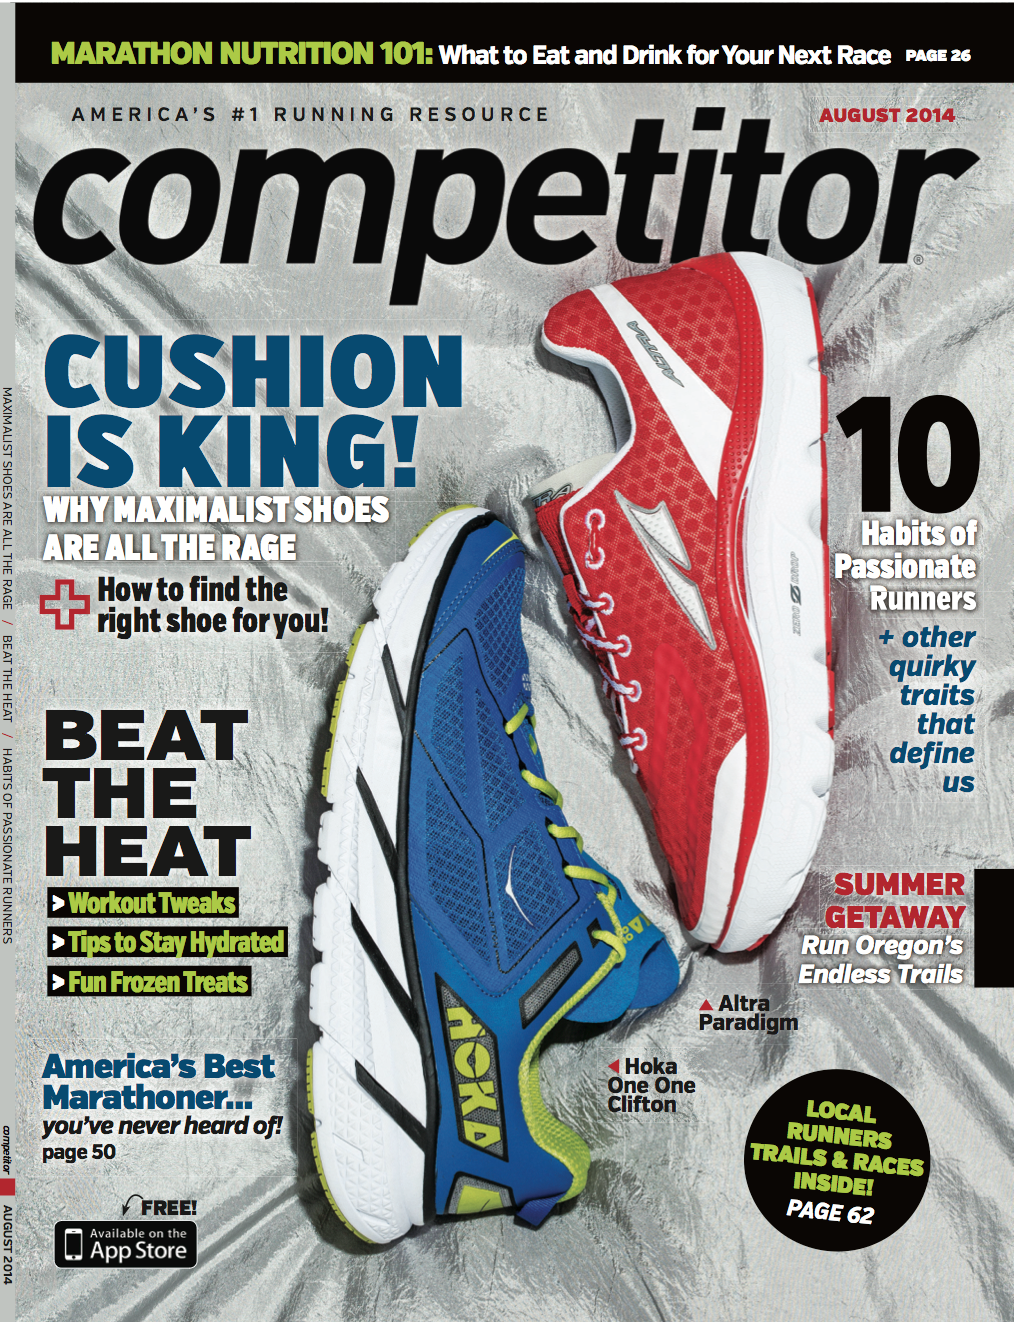 The Altra Paradigm on the cover of Competitor Magazine